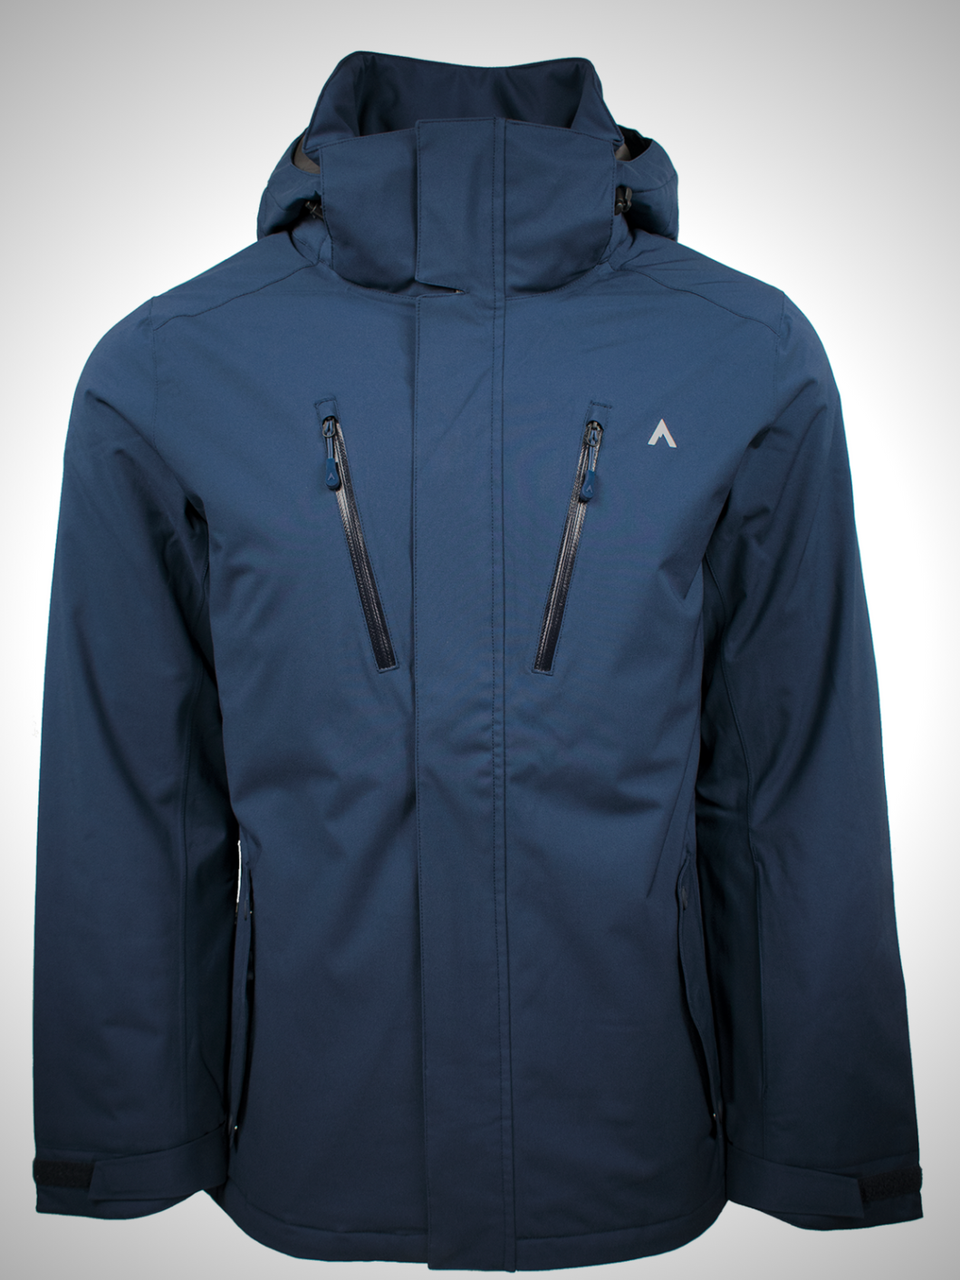 STATION CW (MEN'S) INSULATED JACKET by Terracea - Waterproof, Windproof, Weatherproof Technical Outerwear